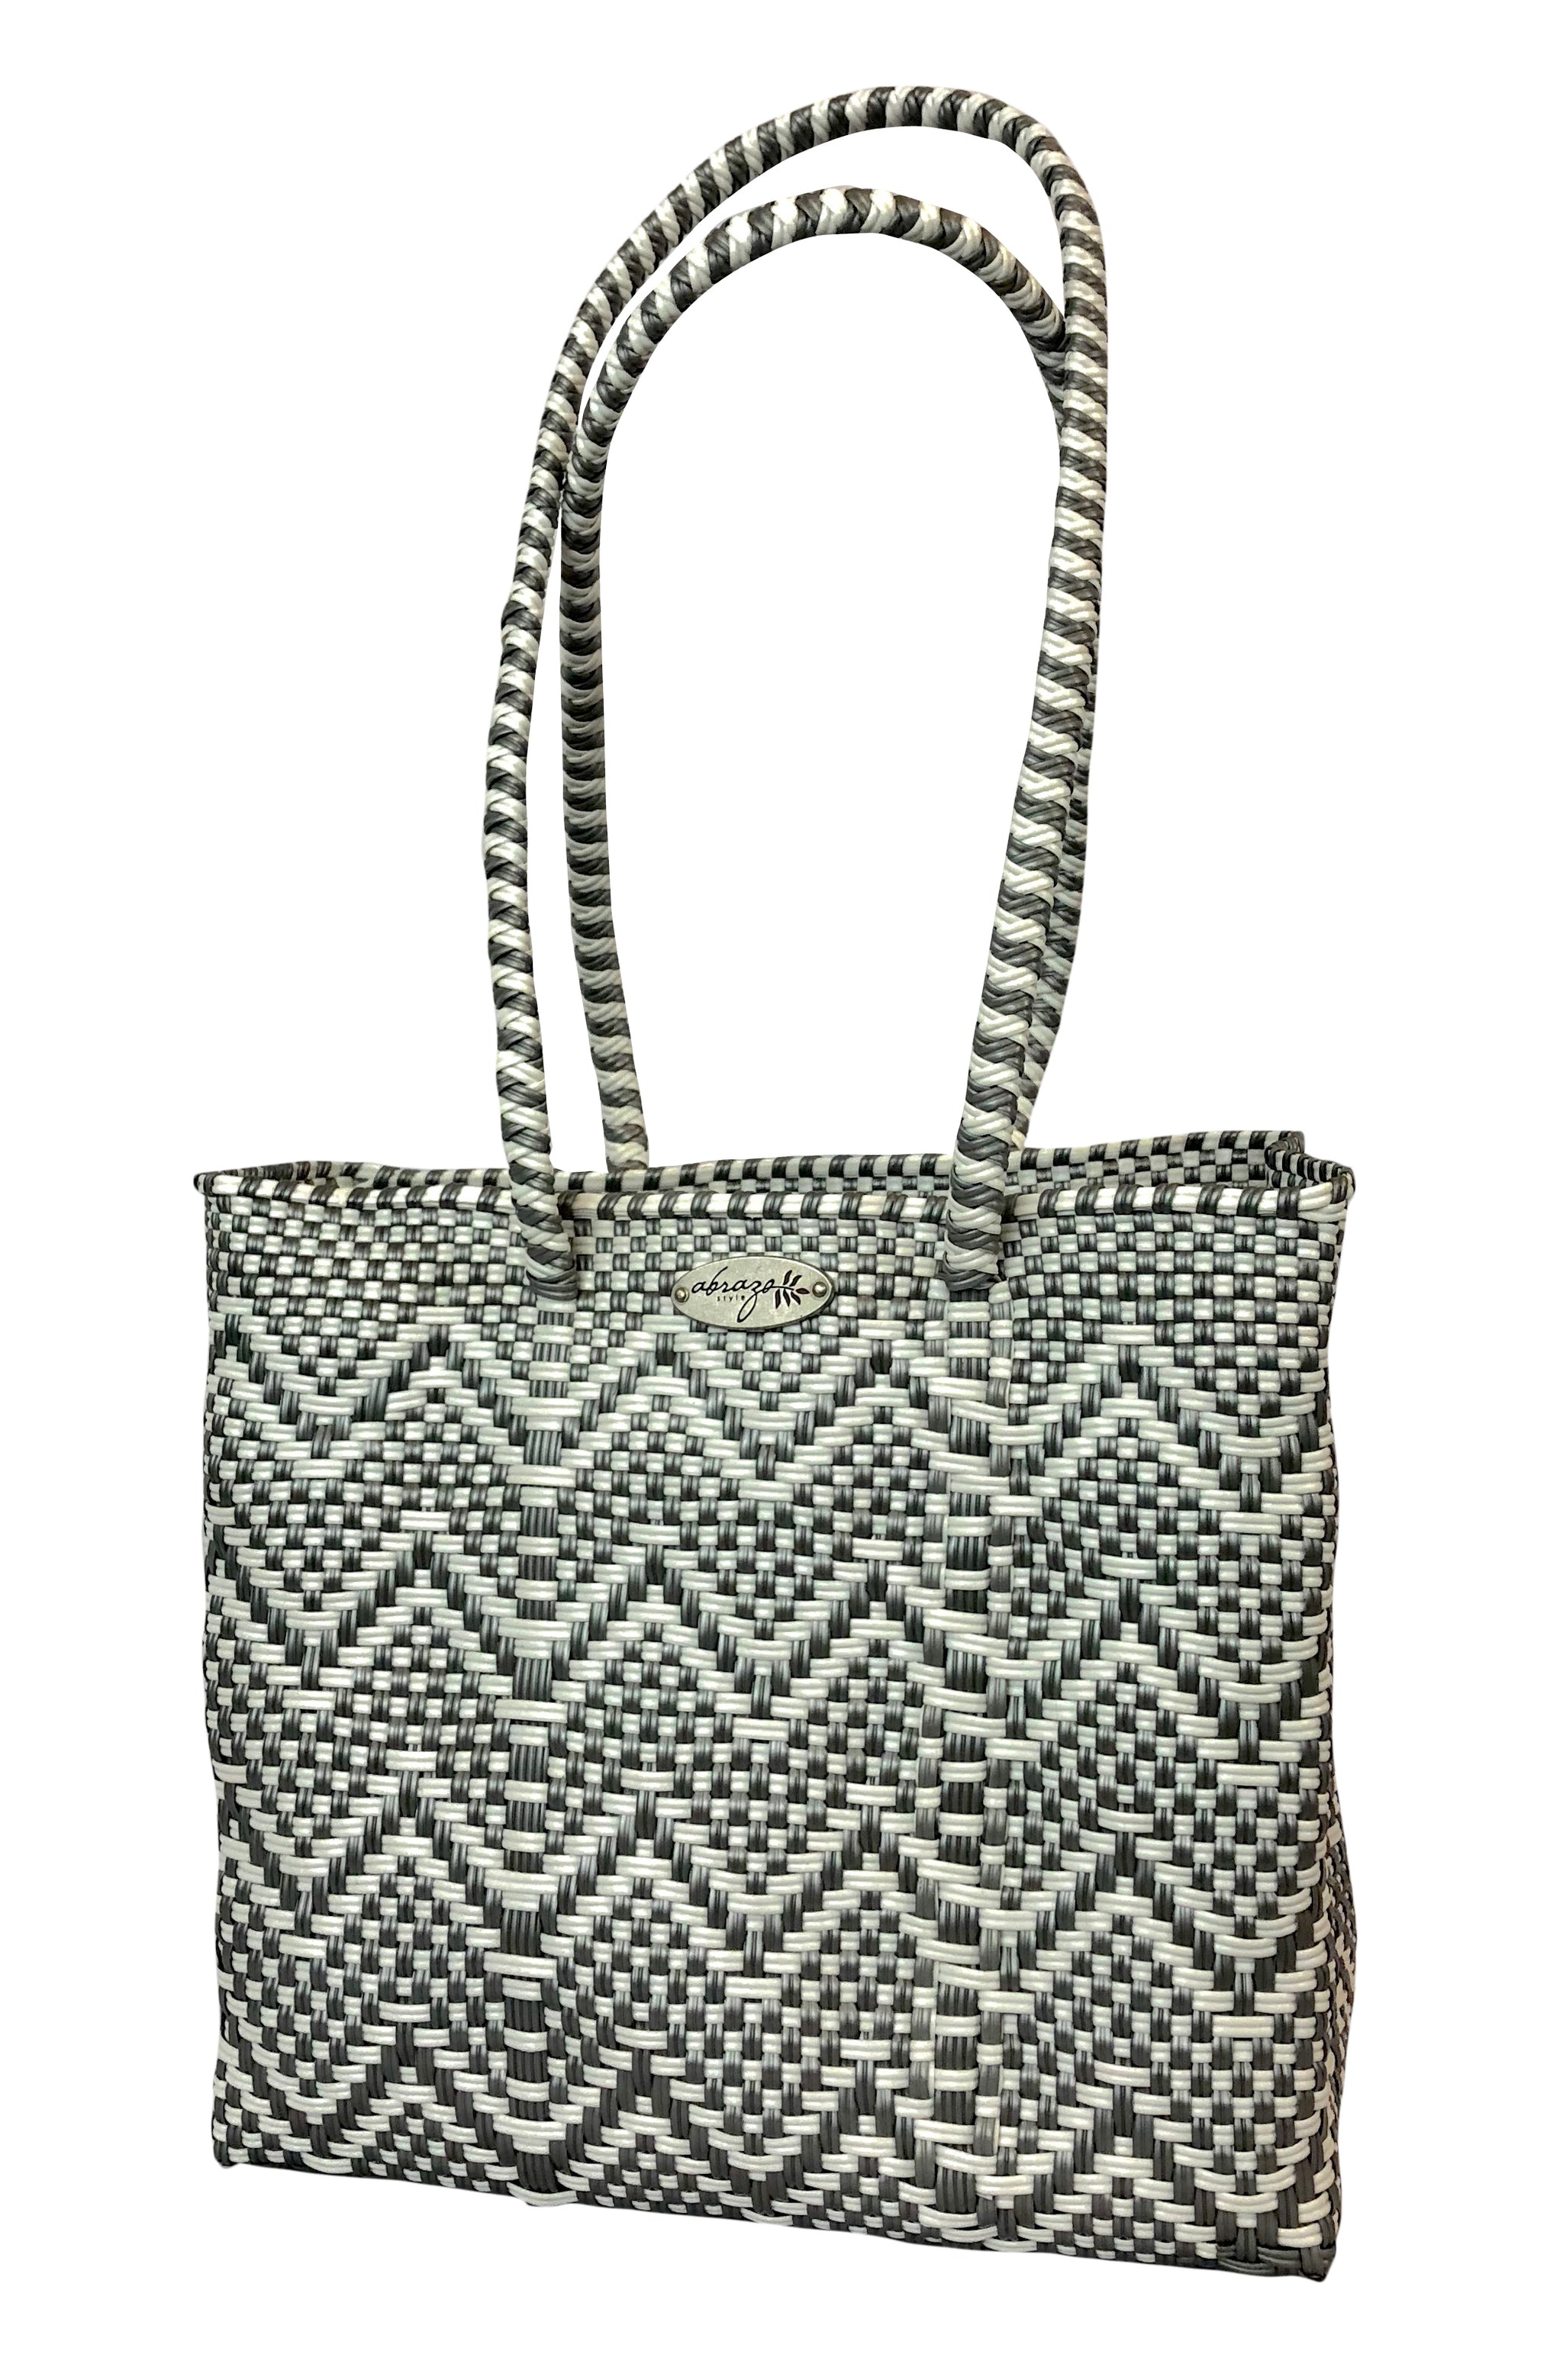 Well's Beach Handbag